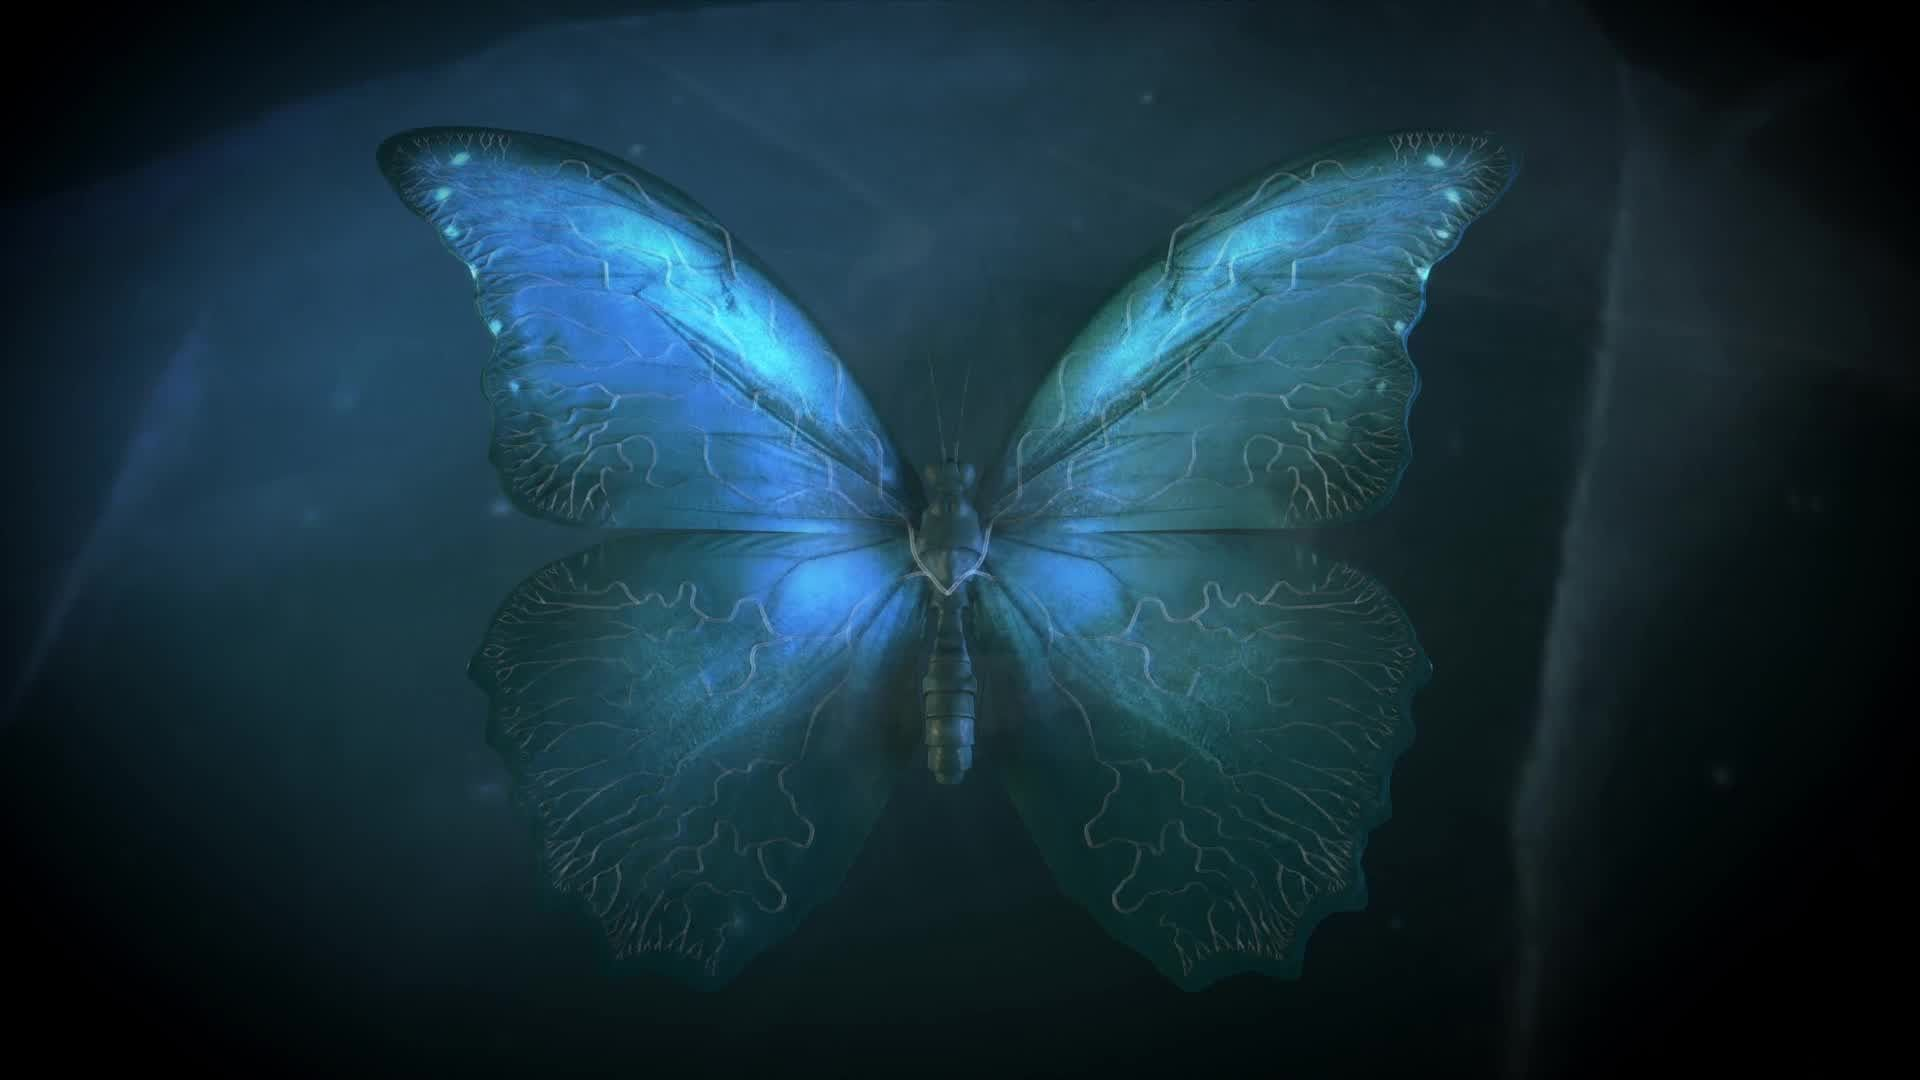 Butterfly Effect Wallpaper 30 image collections of wallpapers 1920x1080